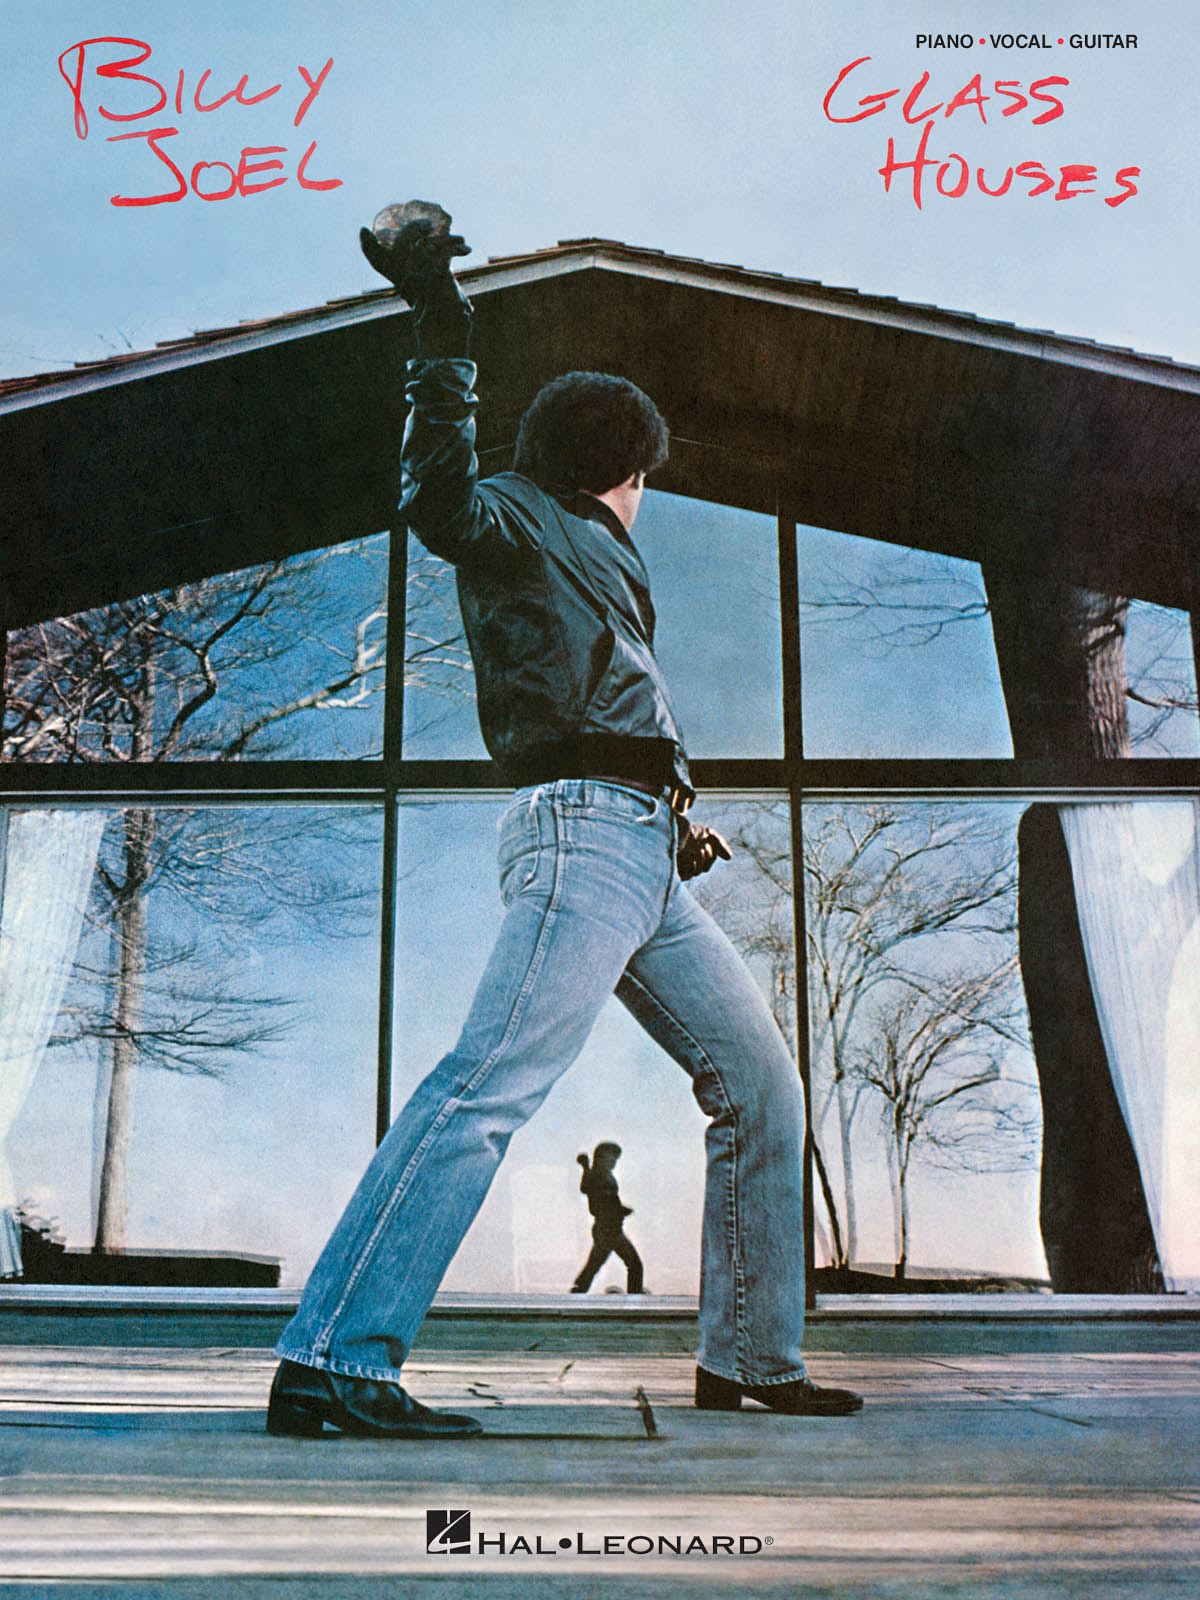 Billy Joel: Billy Joel - Glass Houses: Piano  Vocal and Guitar: Album Songbook